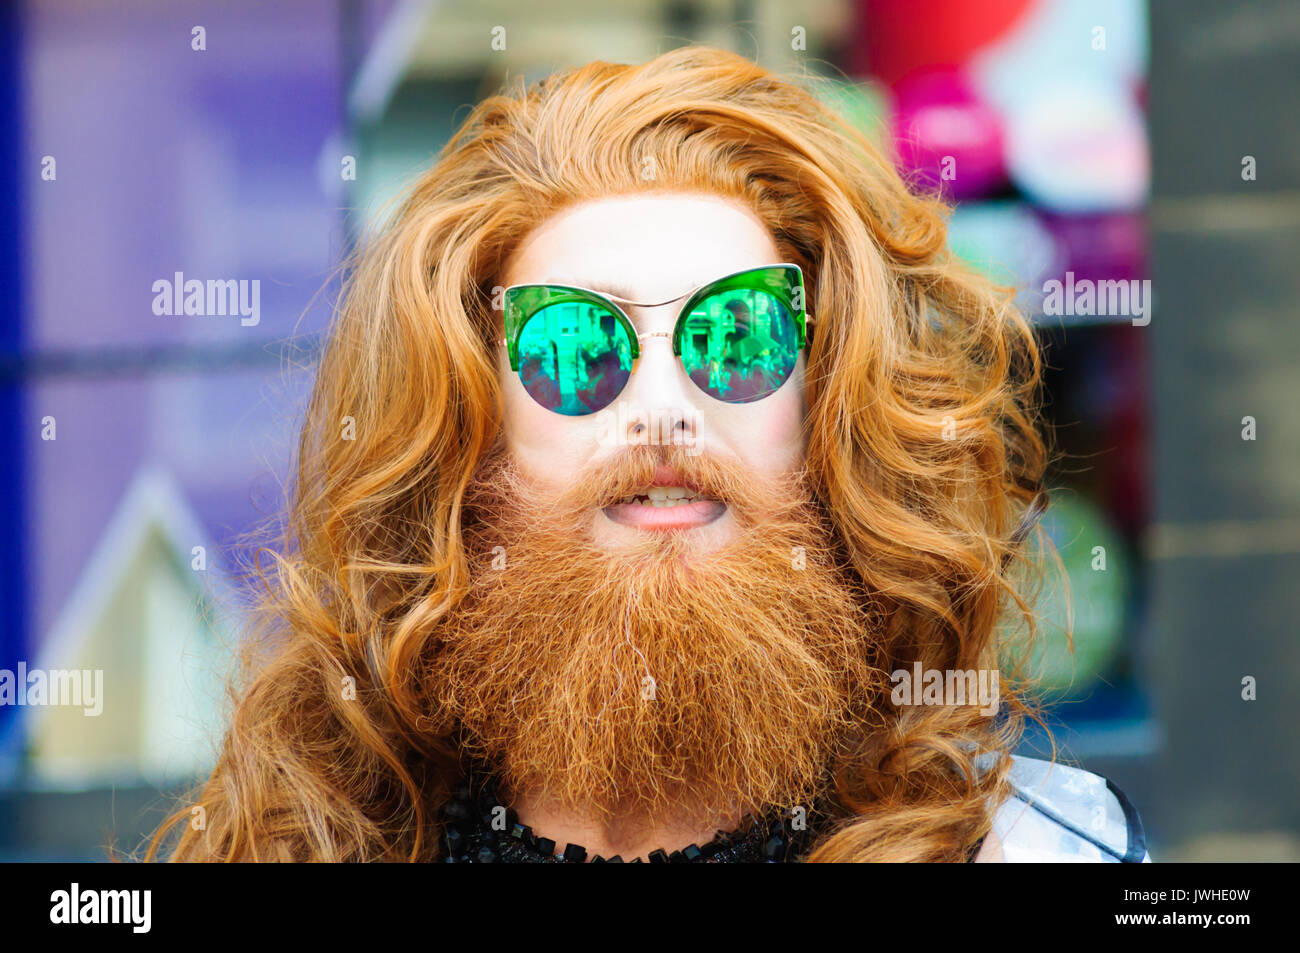 Male Drag Artist Photos   Male Drag Artist Images - Alamy 3746868be0d0